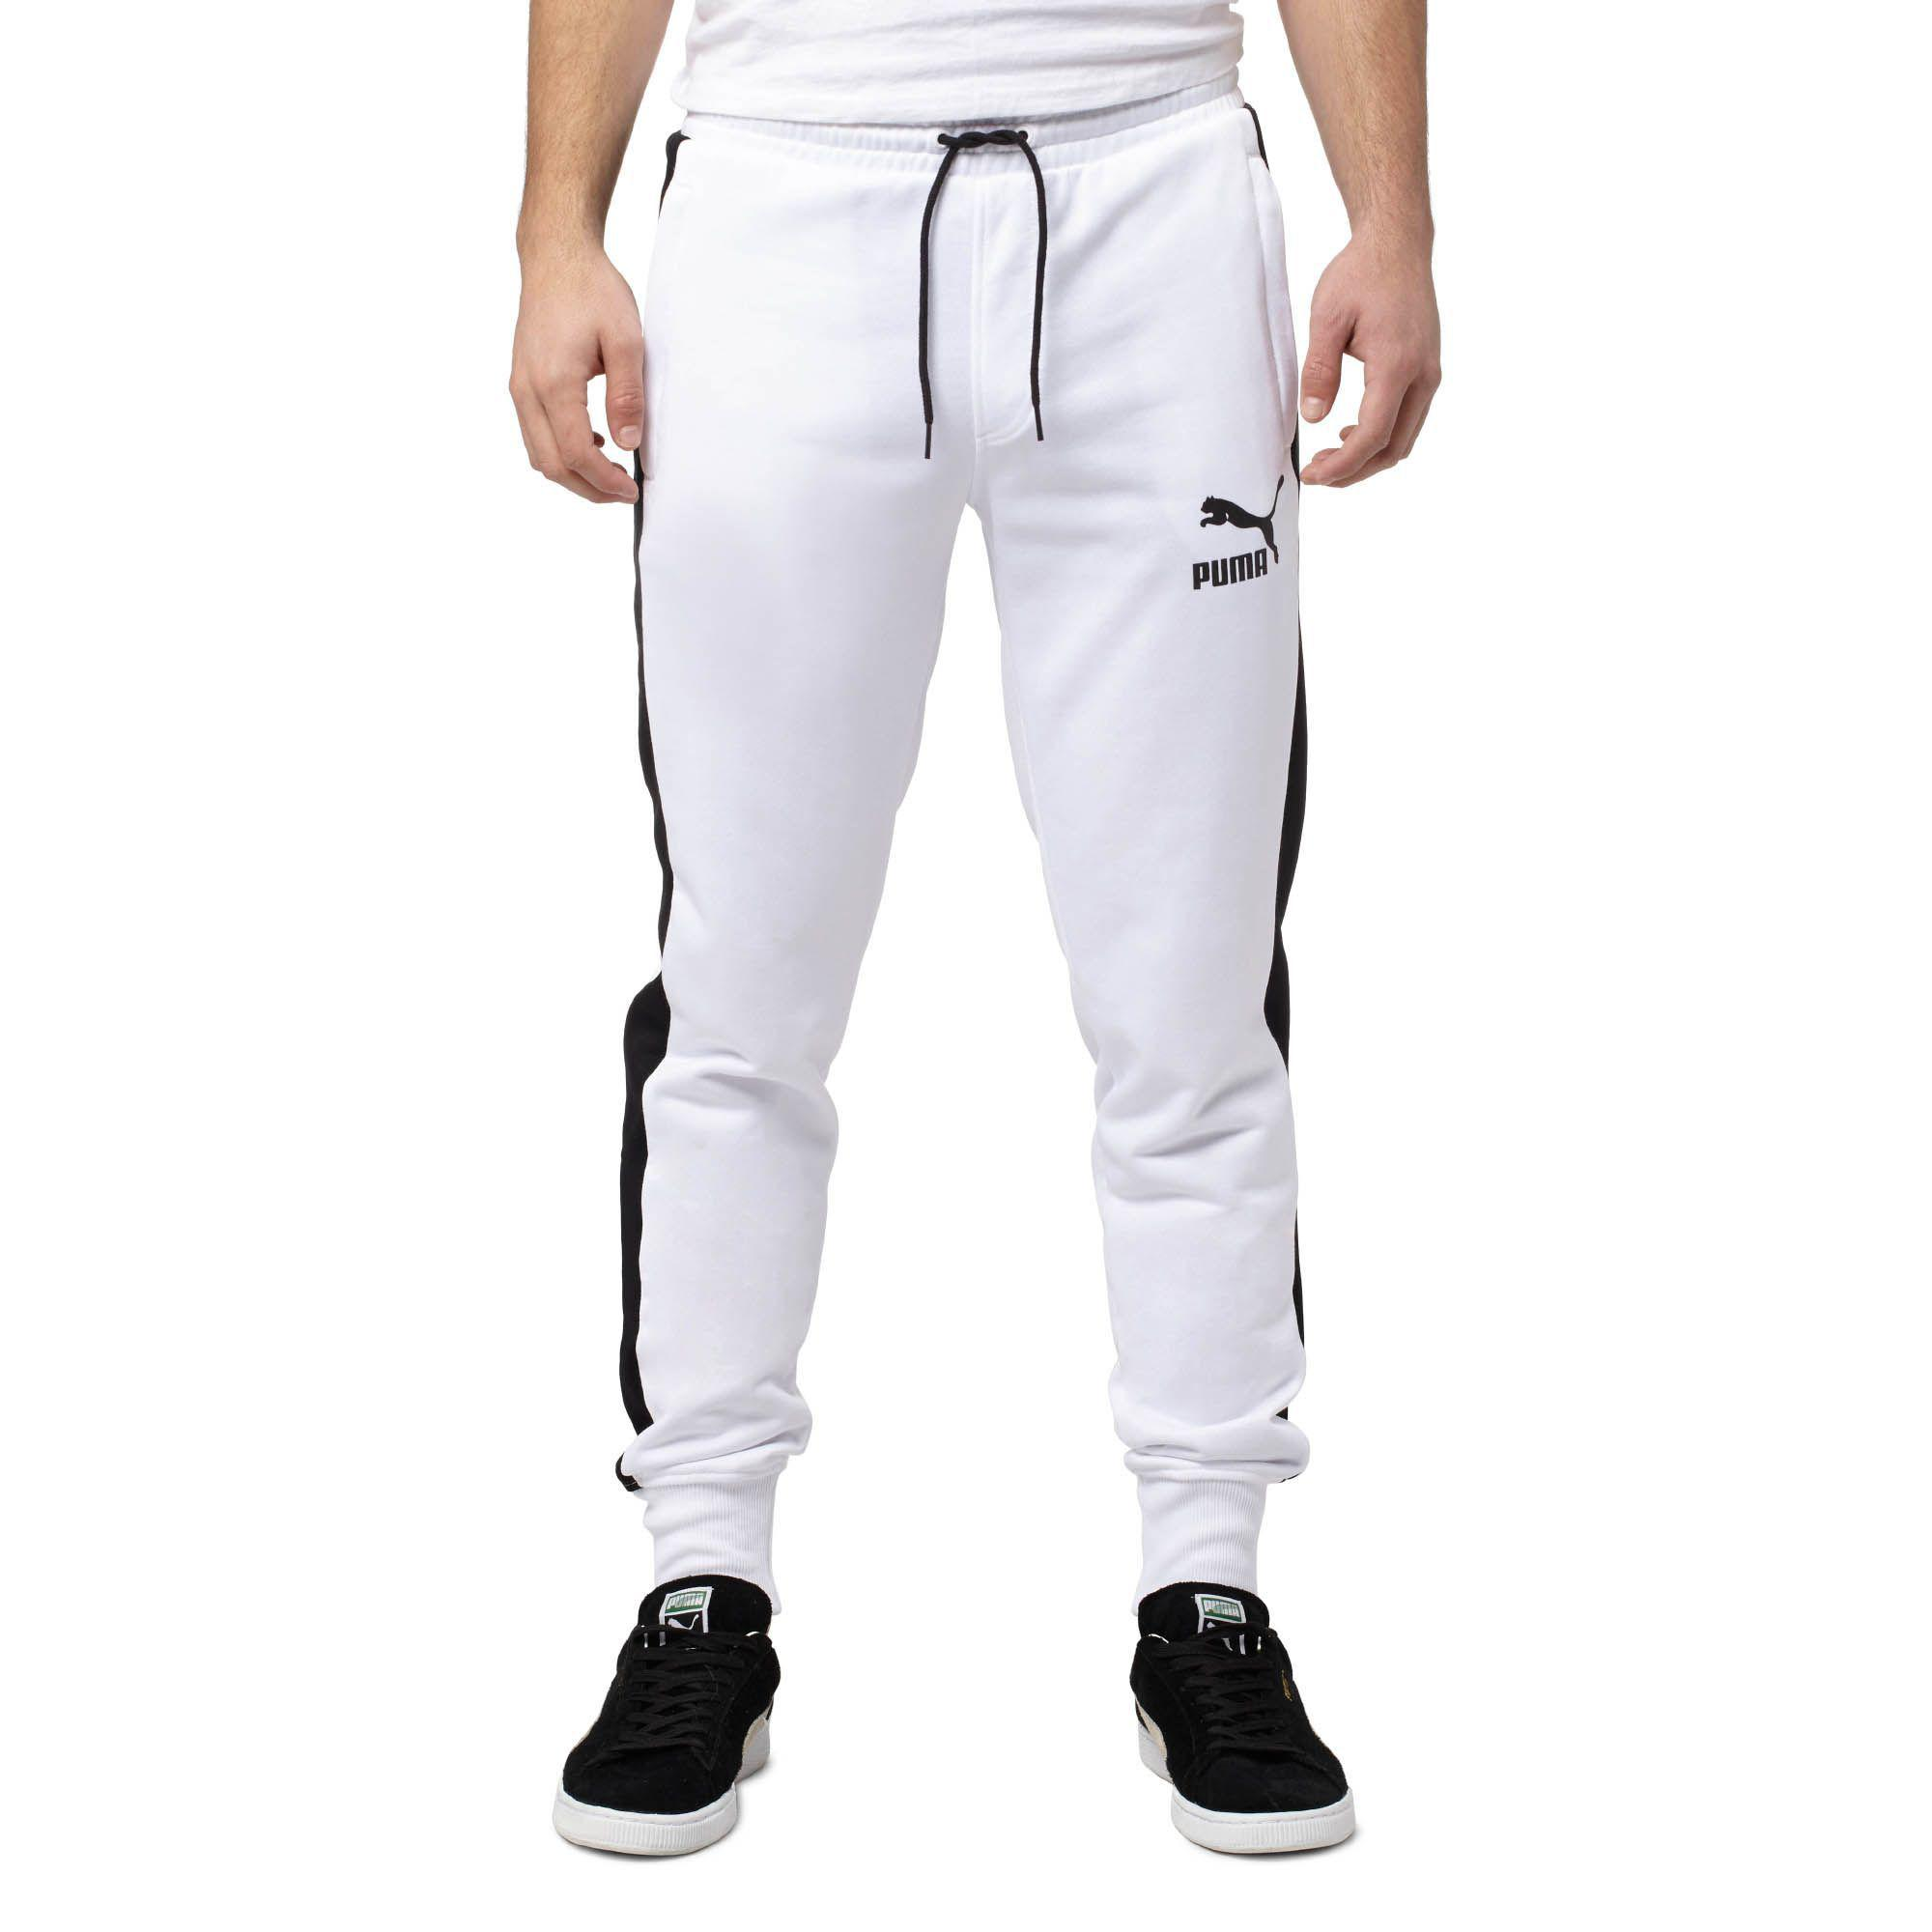 5a8797a1573 Lyst - PUMA Archive T7 Track Pants in White for Men